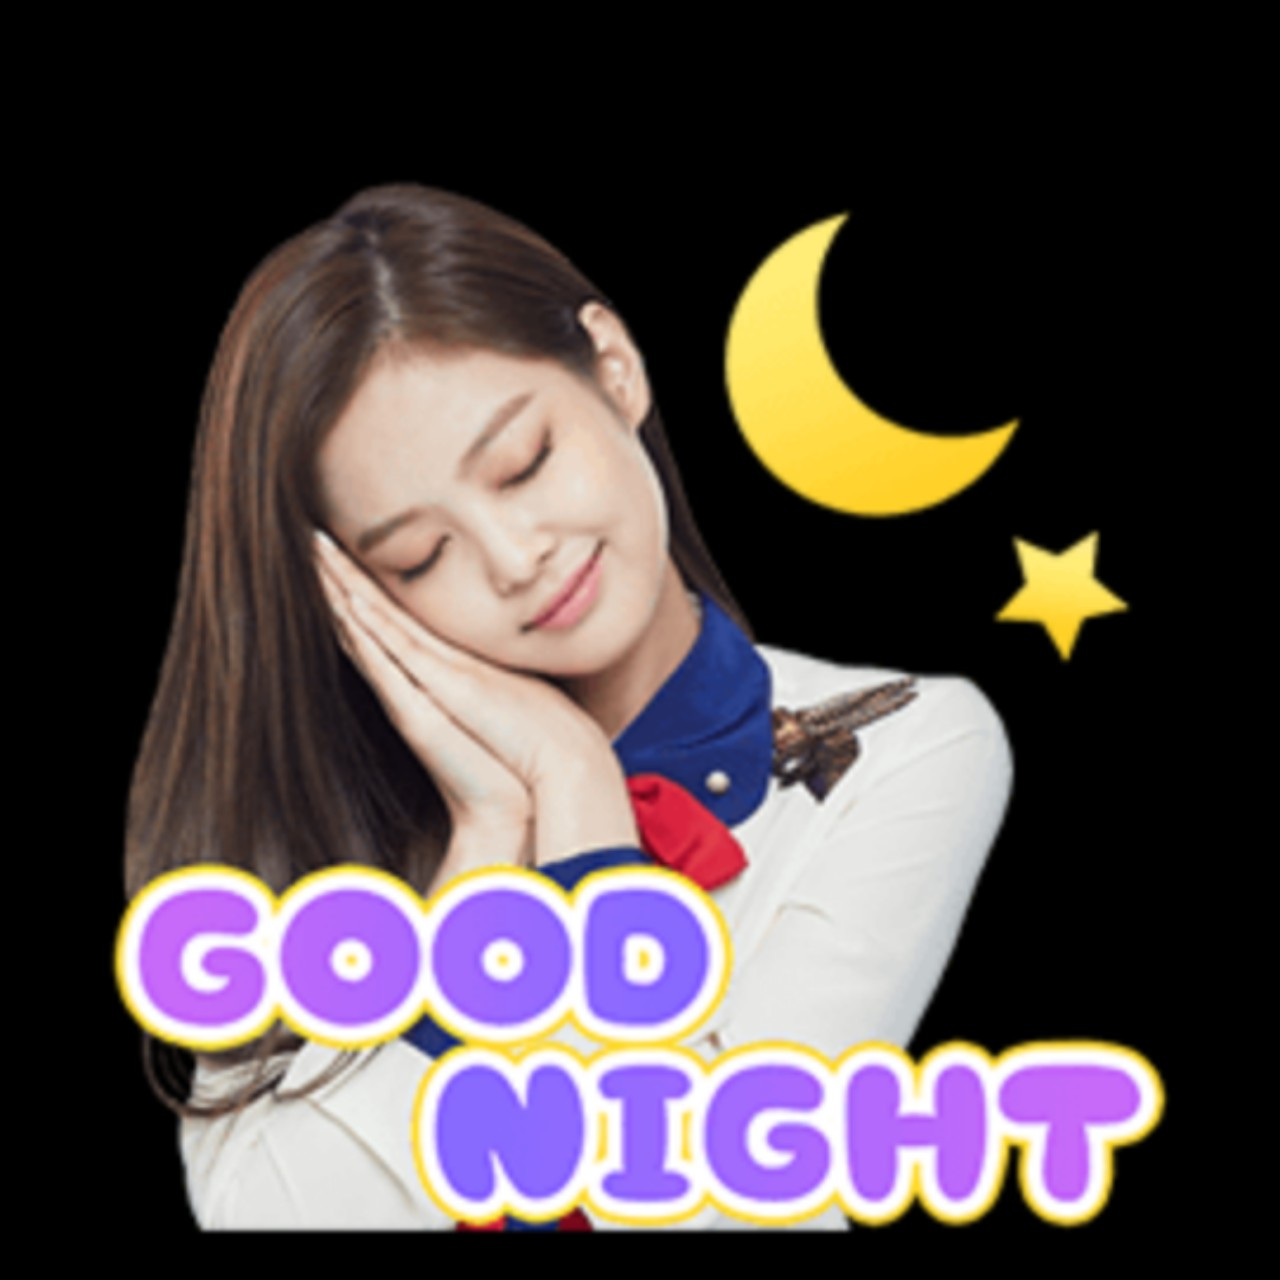 latest good night images simple